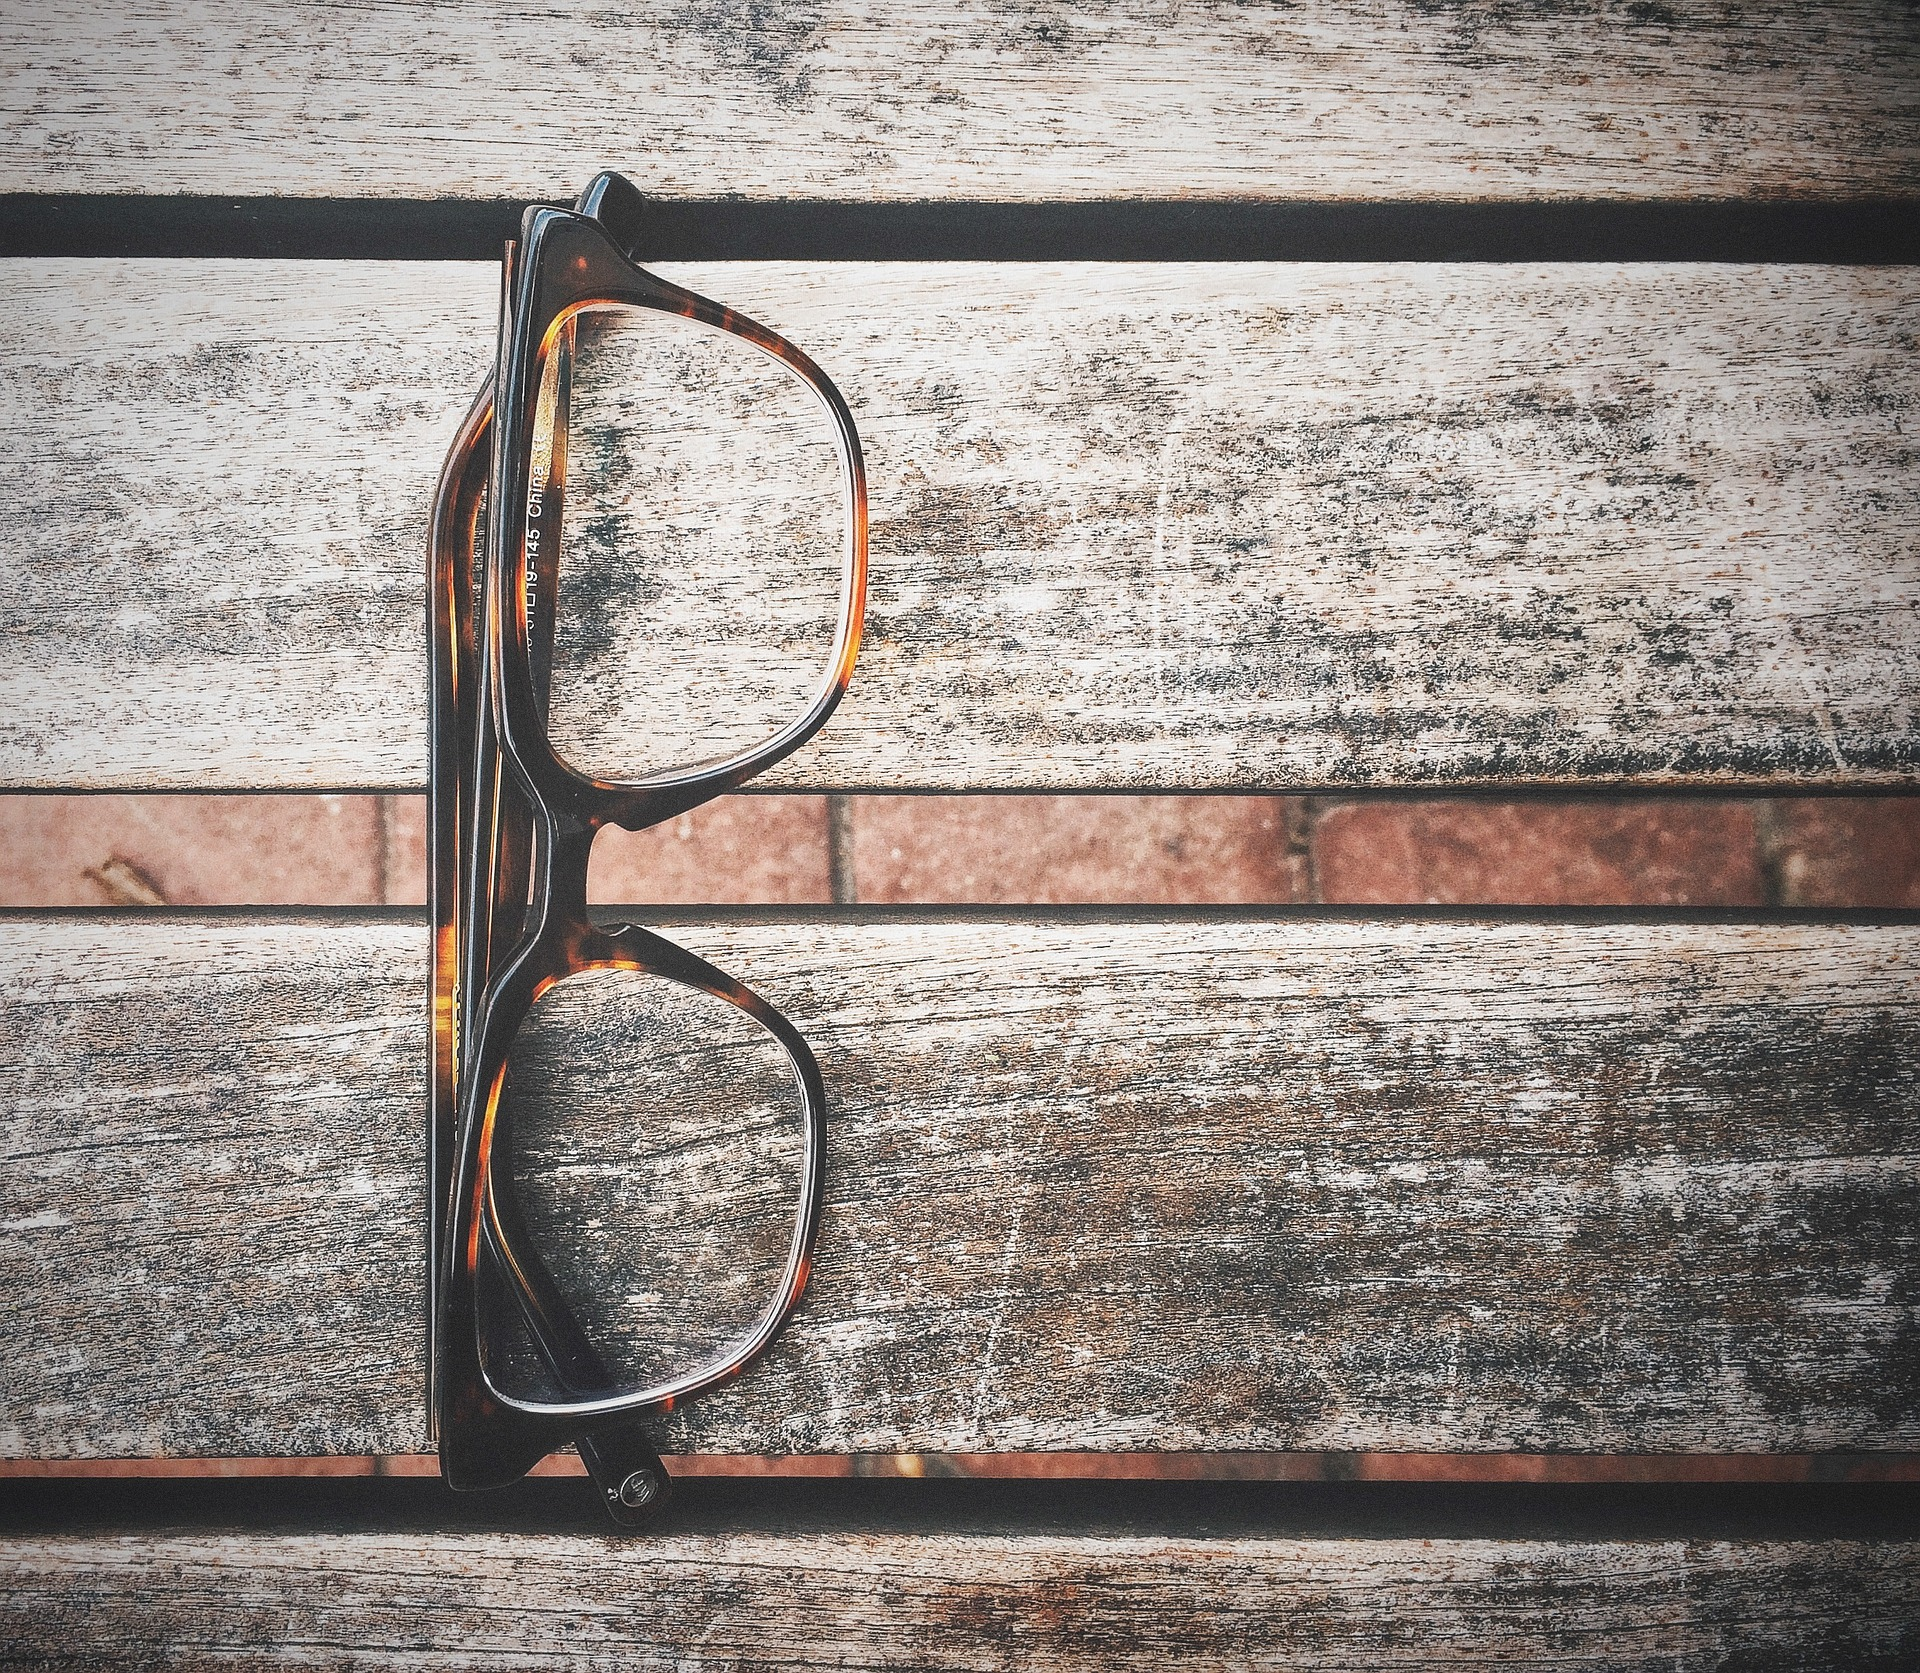 - With over 1,000 eyeglass frames in each location, it is hard not to find your perfect pair (or two). As the seasons change, so do our brands and styles. We are always working to stay on top of the latest trends and technology for you.